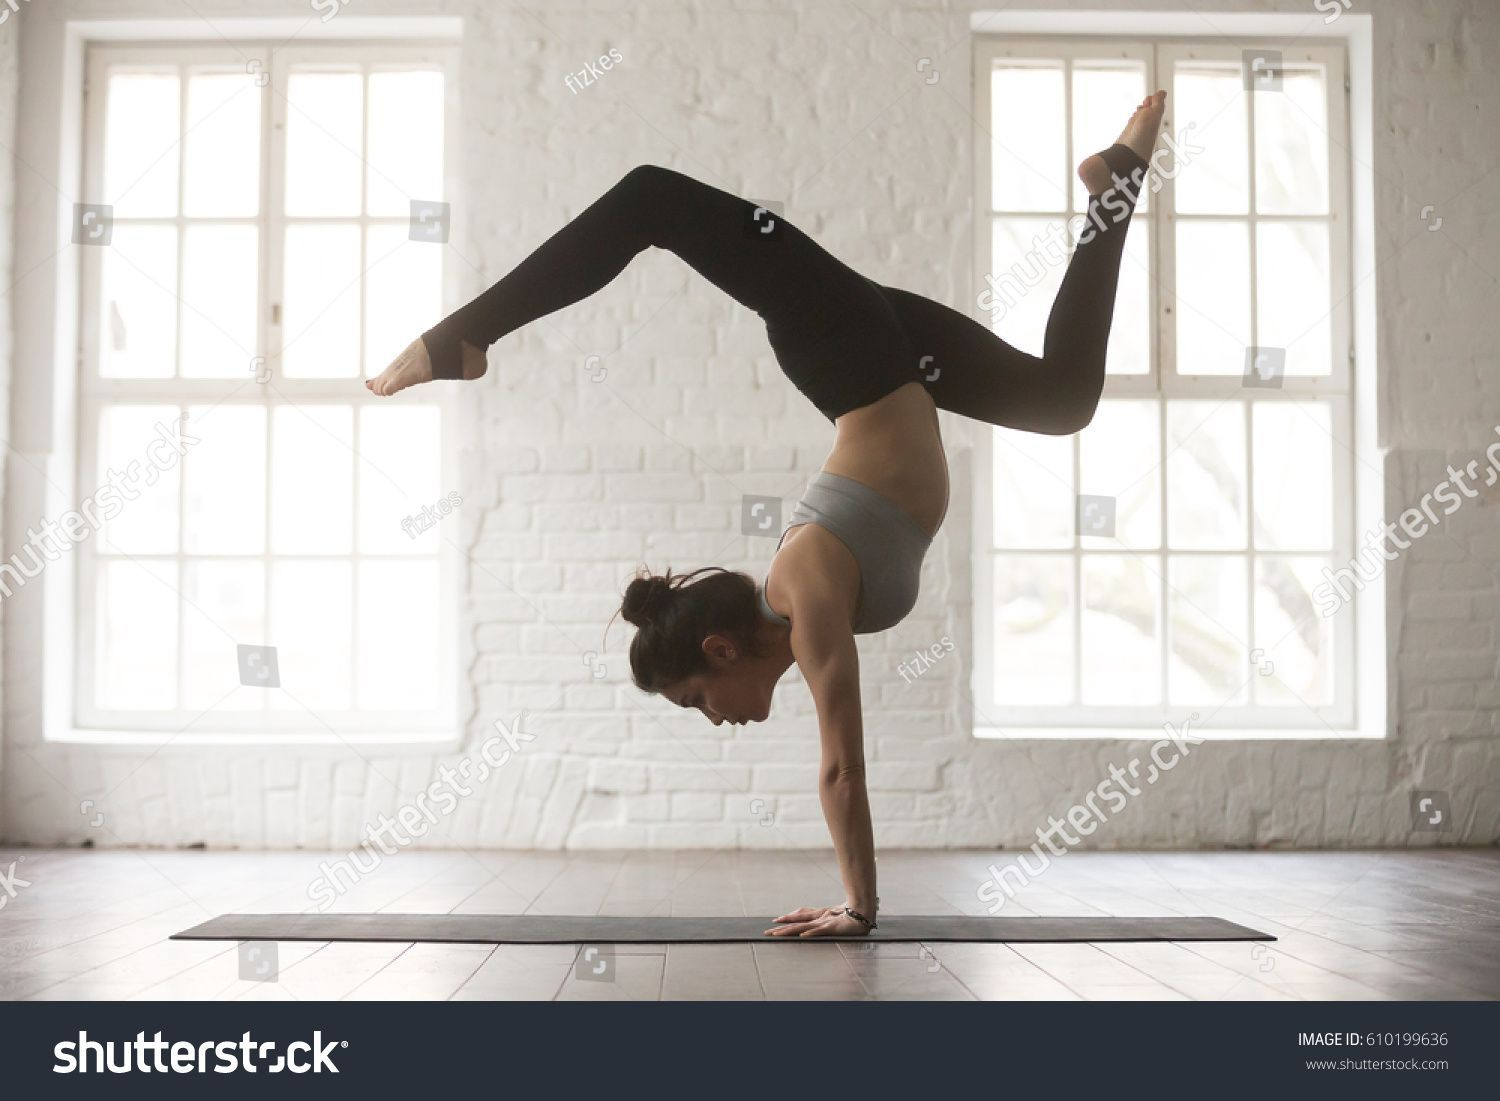 stock-photo-silhouette-of-young-cool-attractive-yogi-woman-practicing-yoga-concept-standing-in-adho-mukha-610199636